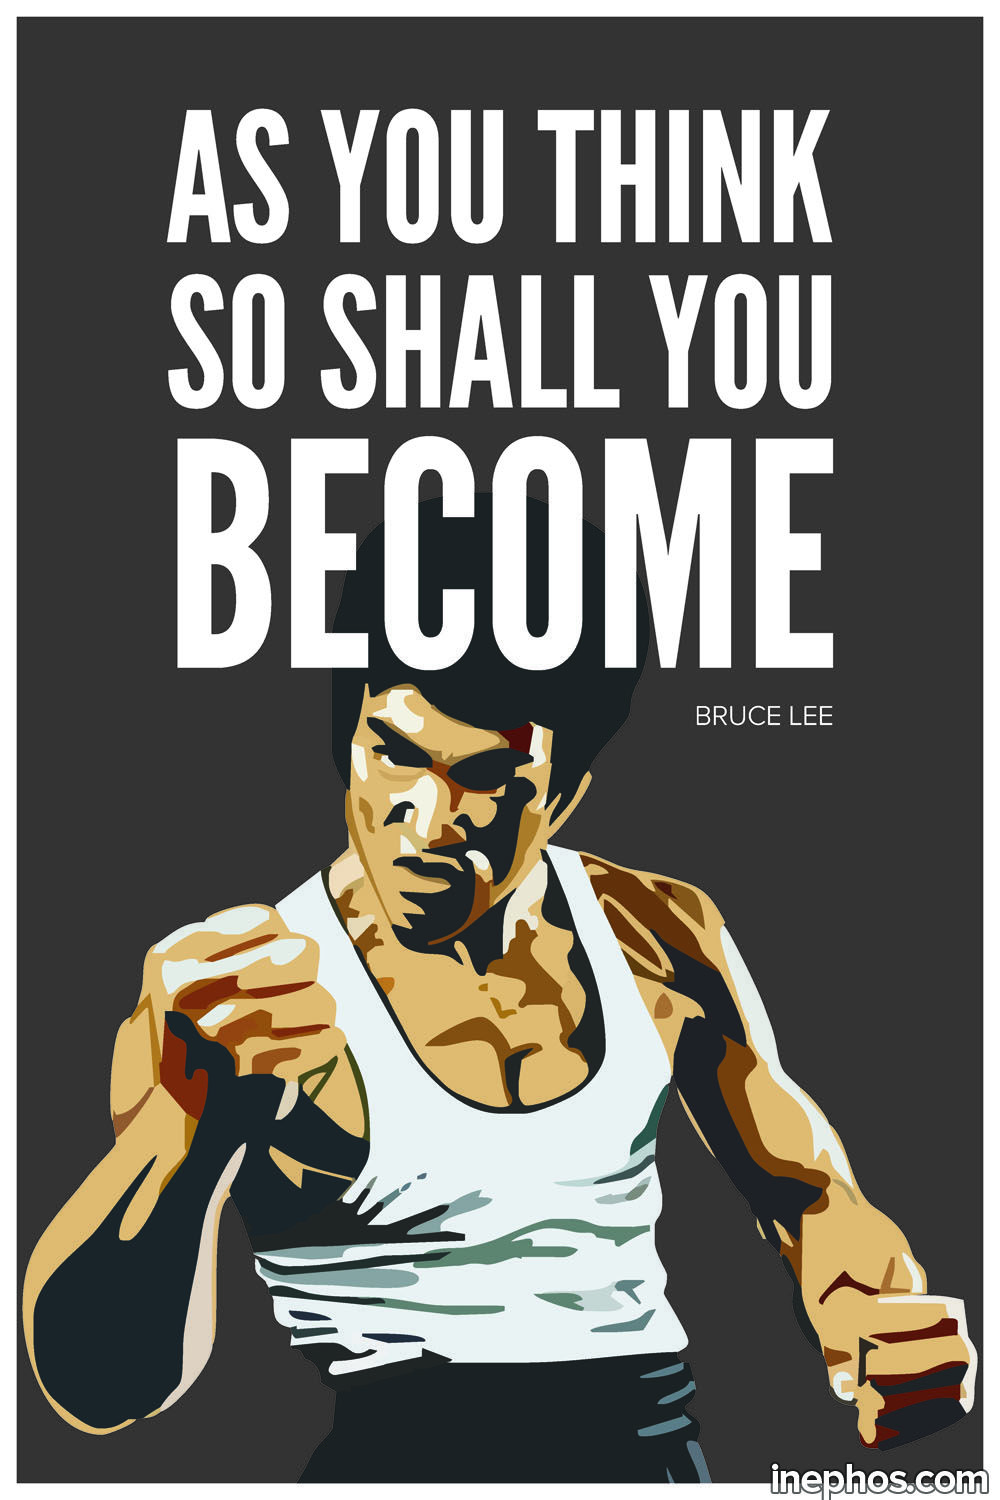 Bruce Lee As You Think Quote Poster Art Inspirational Posters For Room Inephos Inspirational Posters Quote Posters Thinking Quotes